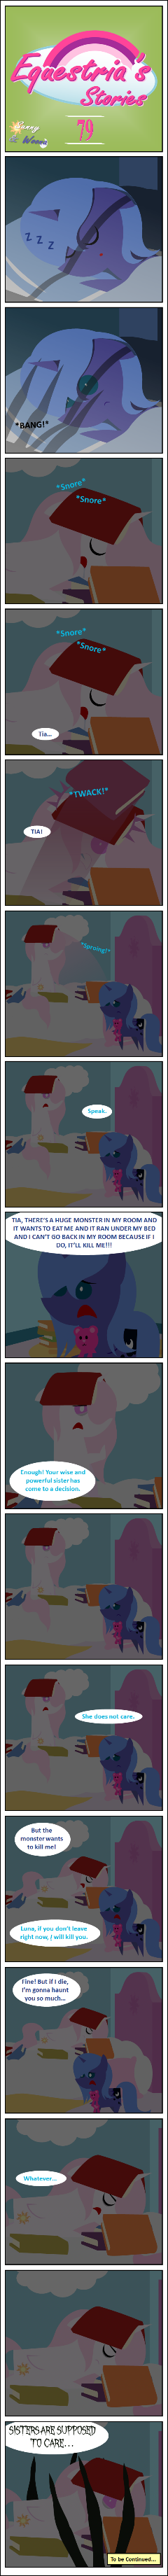 Equestria's Stories - 79 (Sunny and Woona)